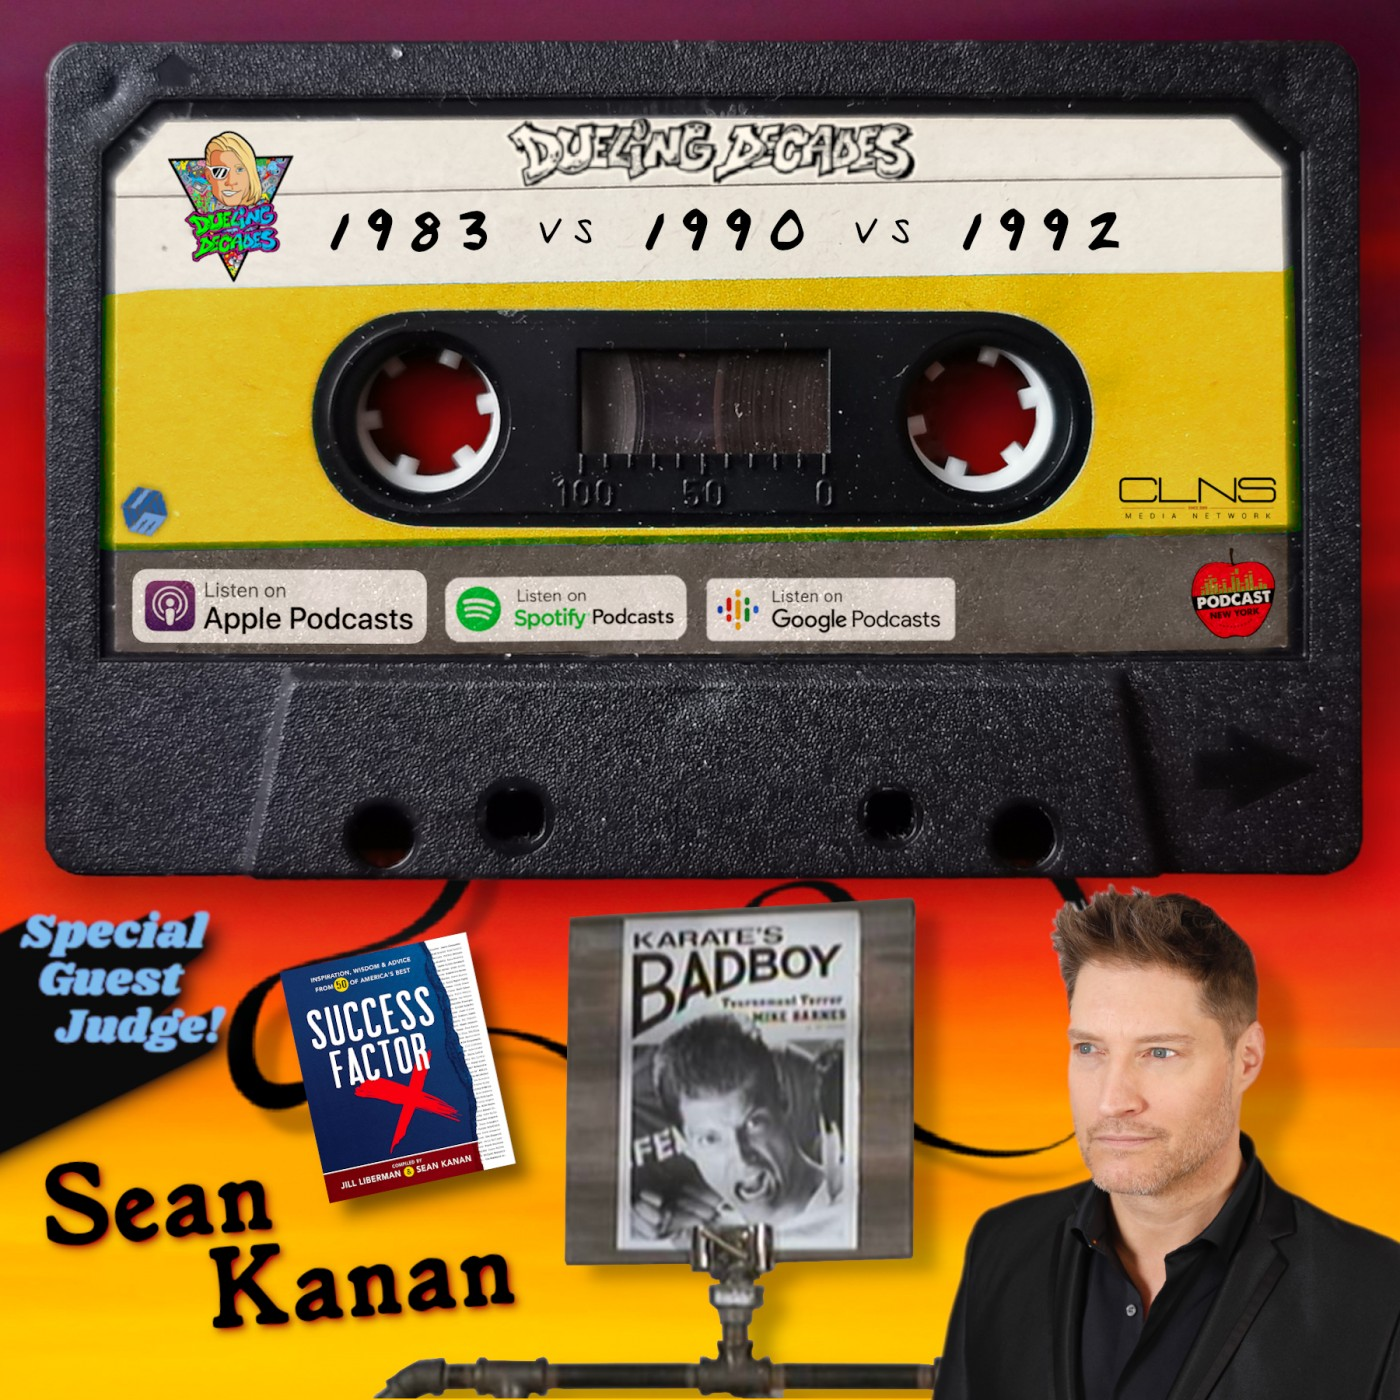 Soap Opera star and Karate Bad Boy, Sean Kanan is here to front sweep this showdown between May 1983, 1990 & 1992!